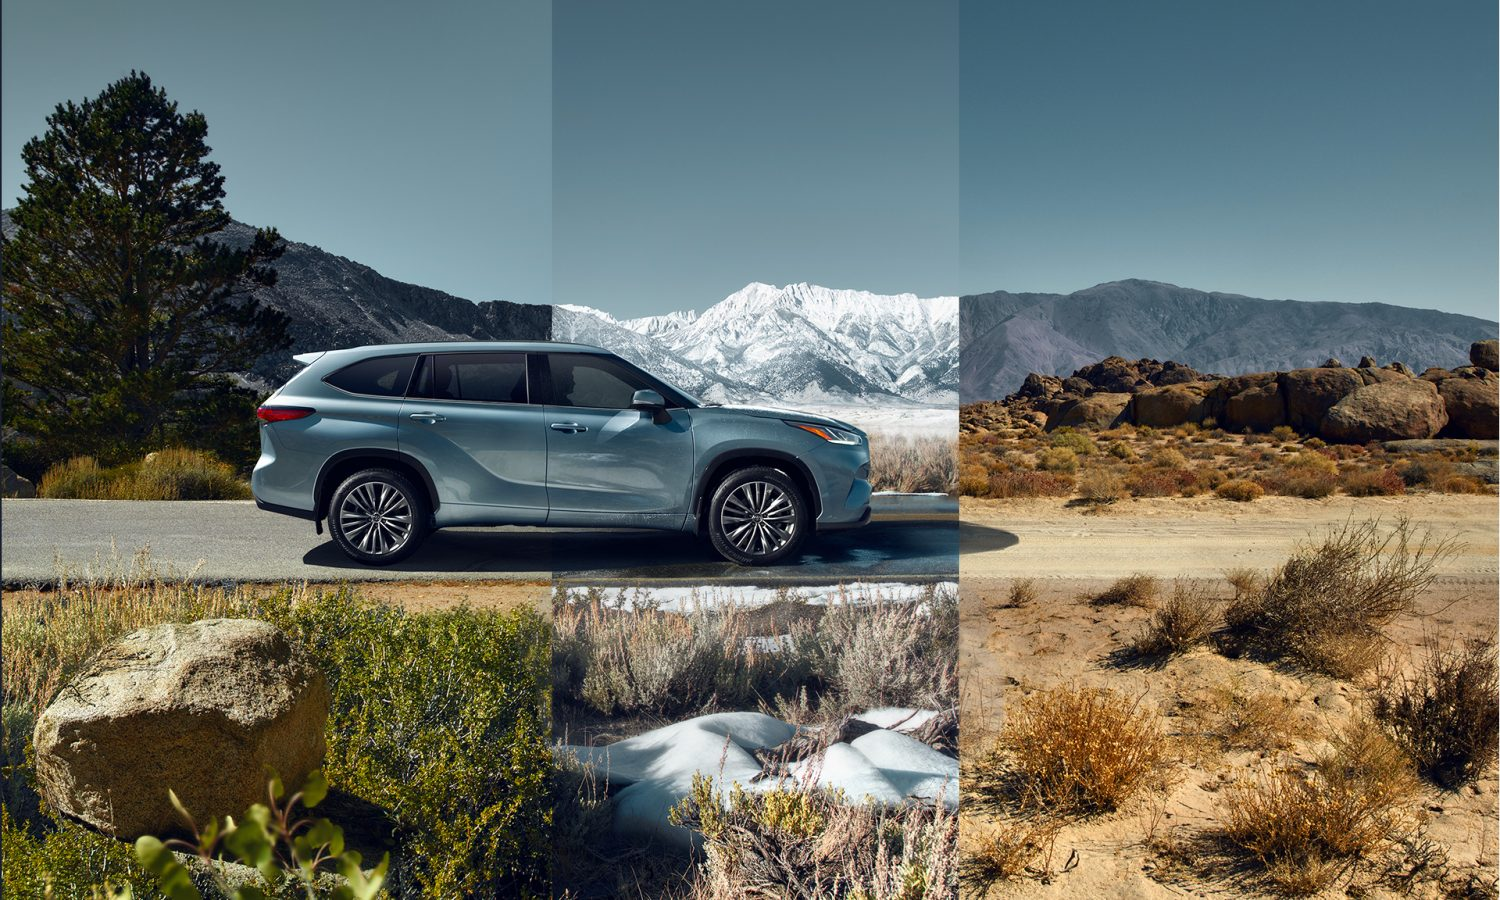 Toyota Super Bowl Spot to Feature All-New 2020 Highlander